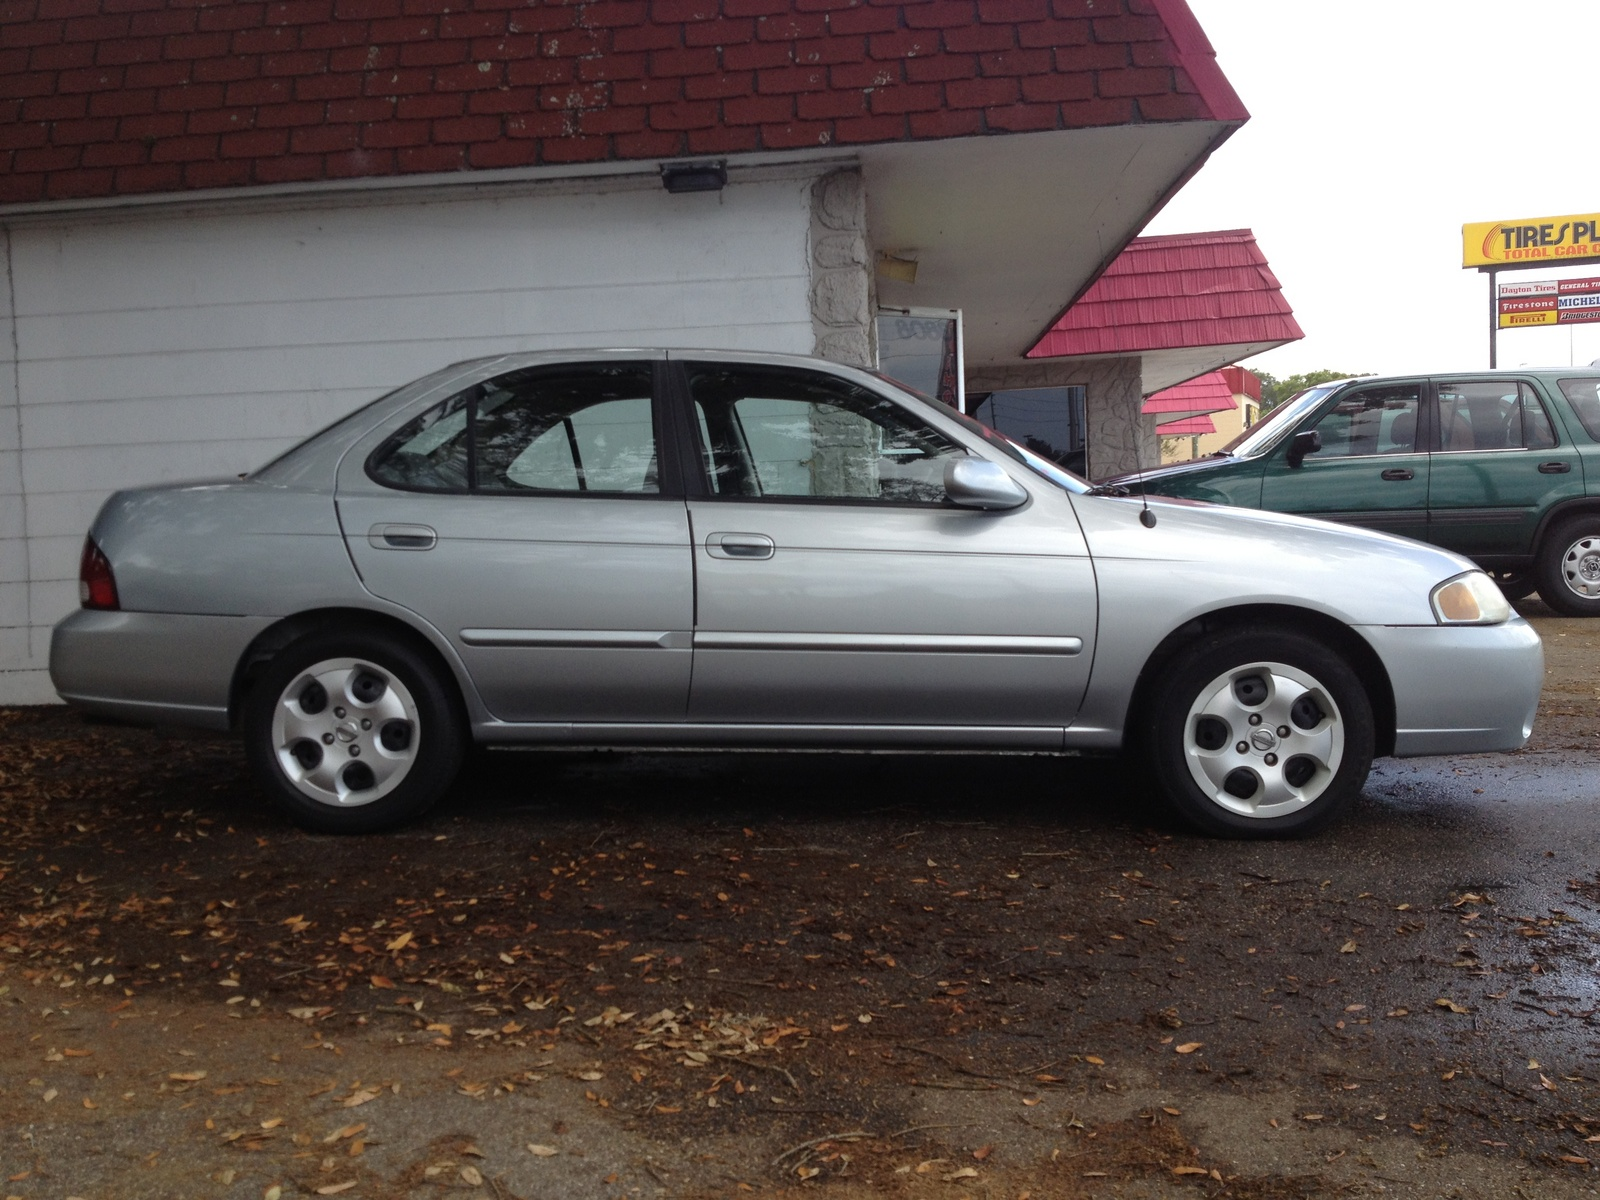 2001 Nissan Altima Gxe >> 2003 Nissan Sentra - Pictures - CarGurus